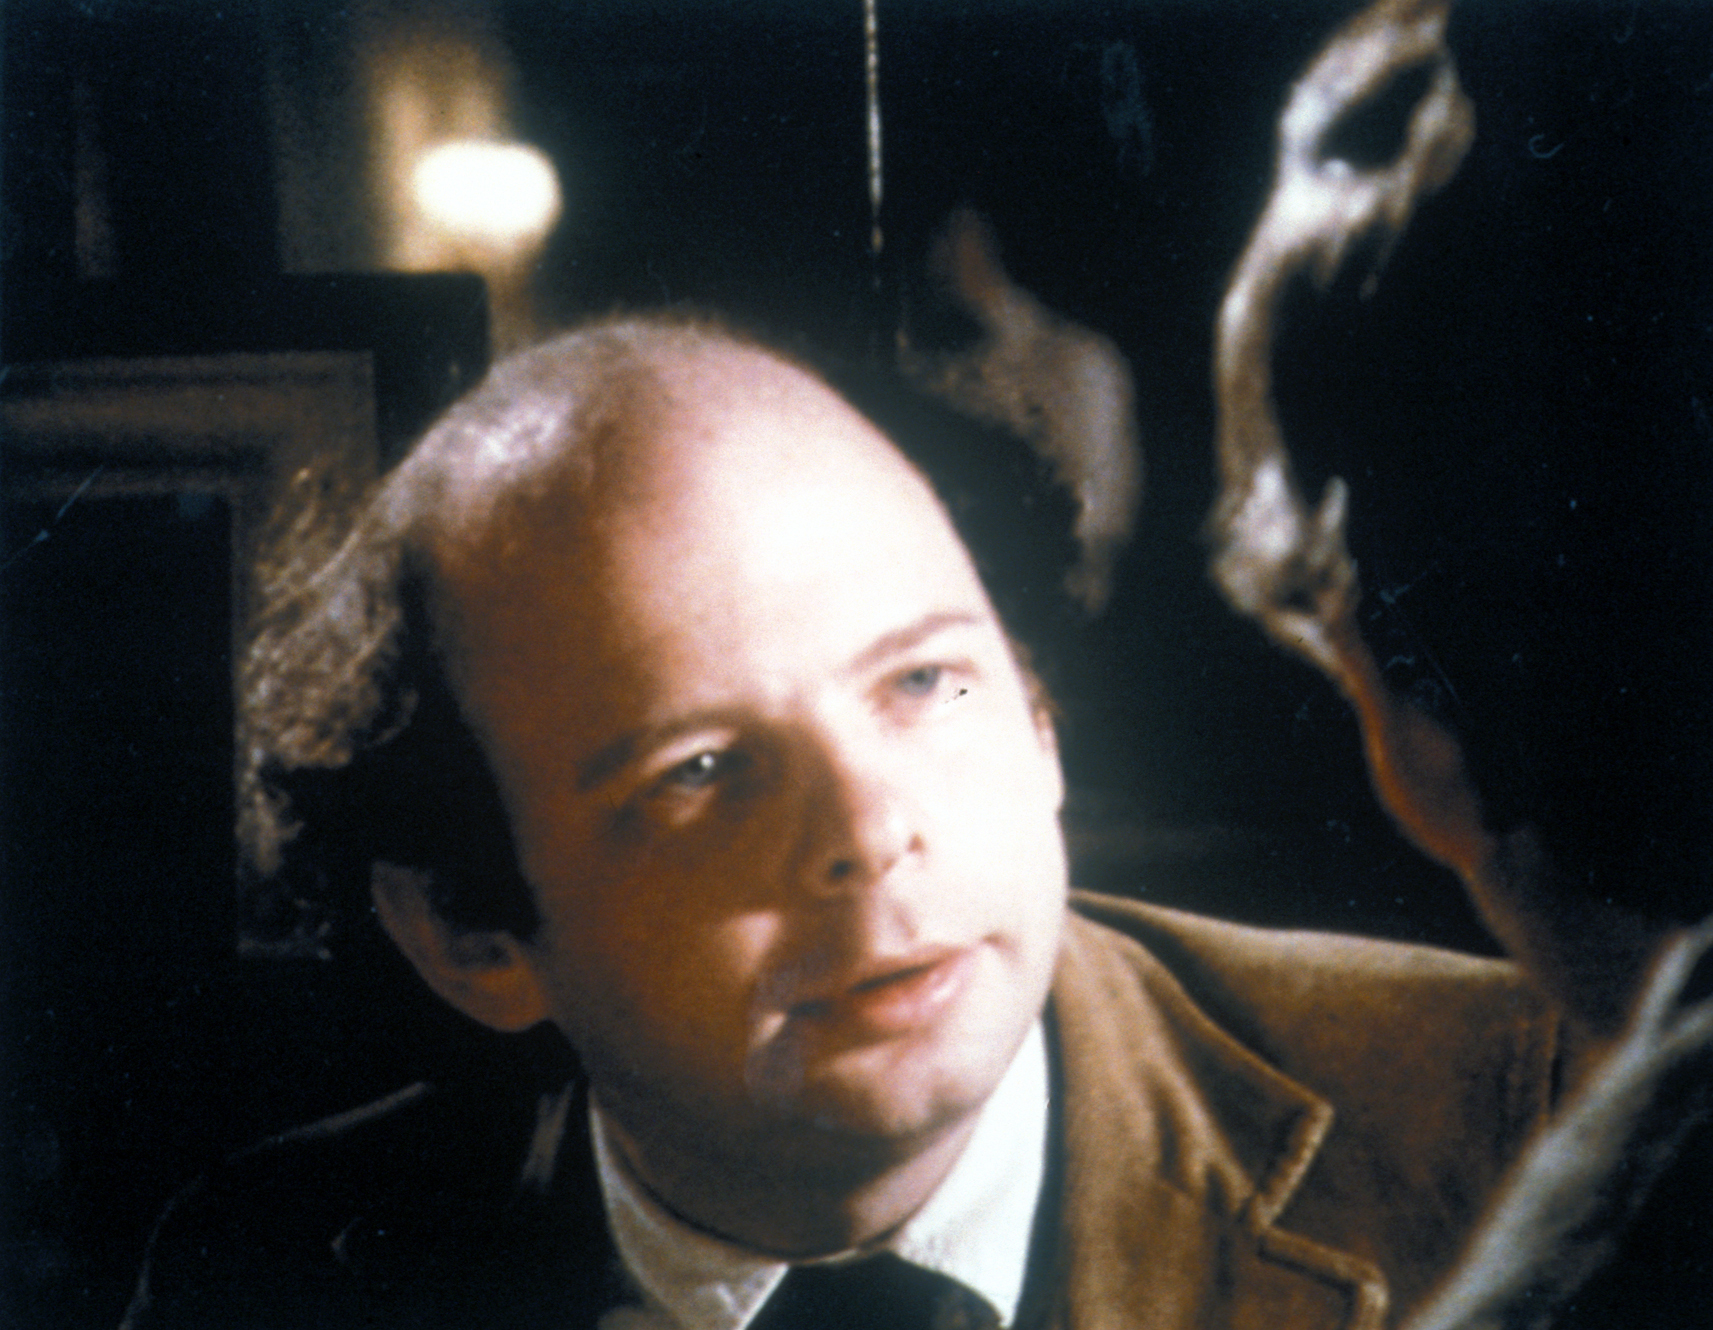 Wallace Shawn in My Dinner with Andre (1981)